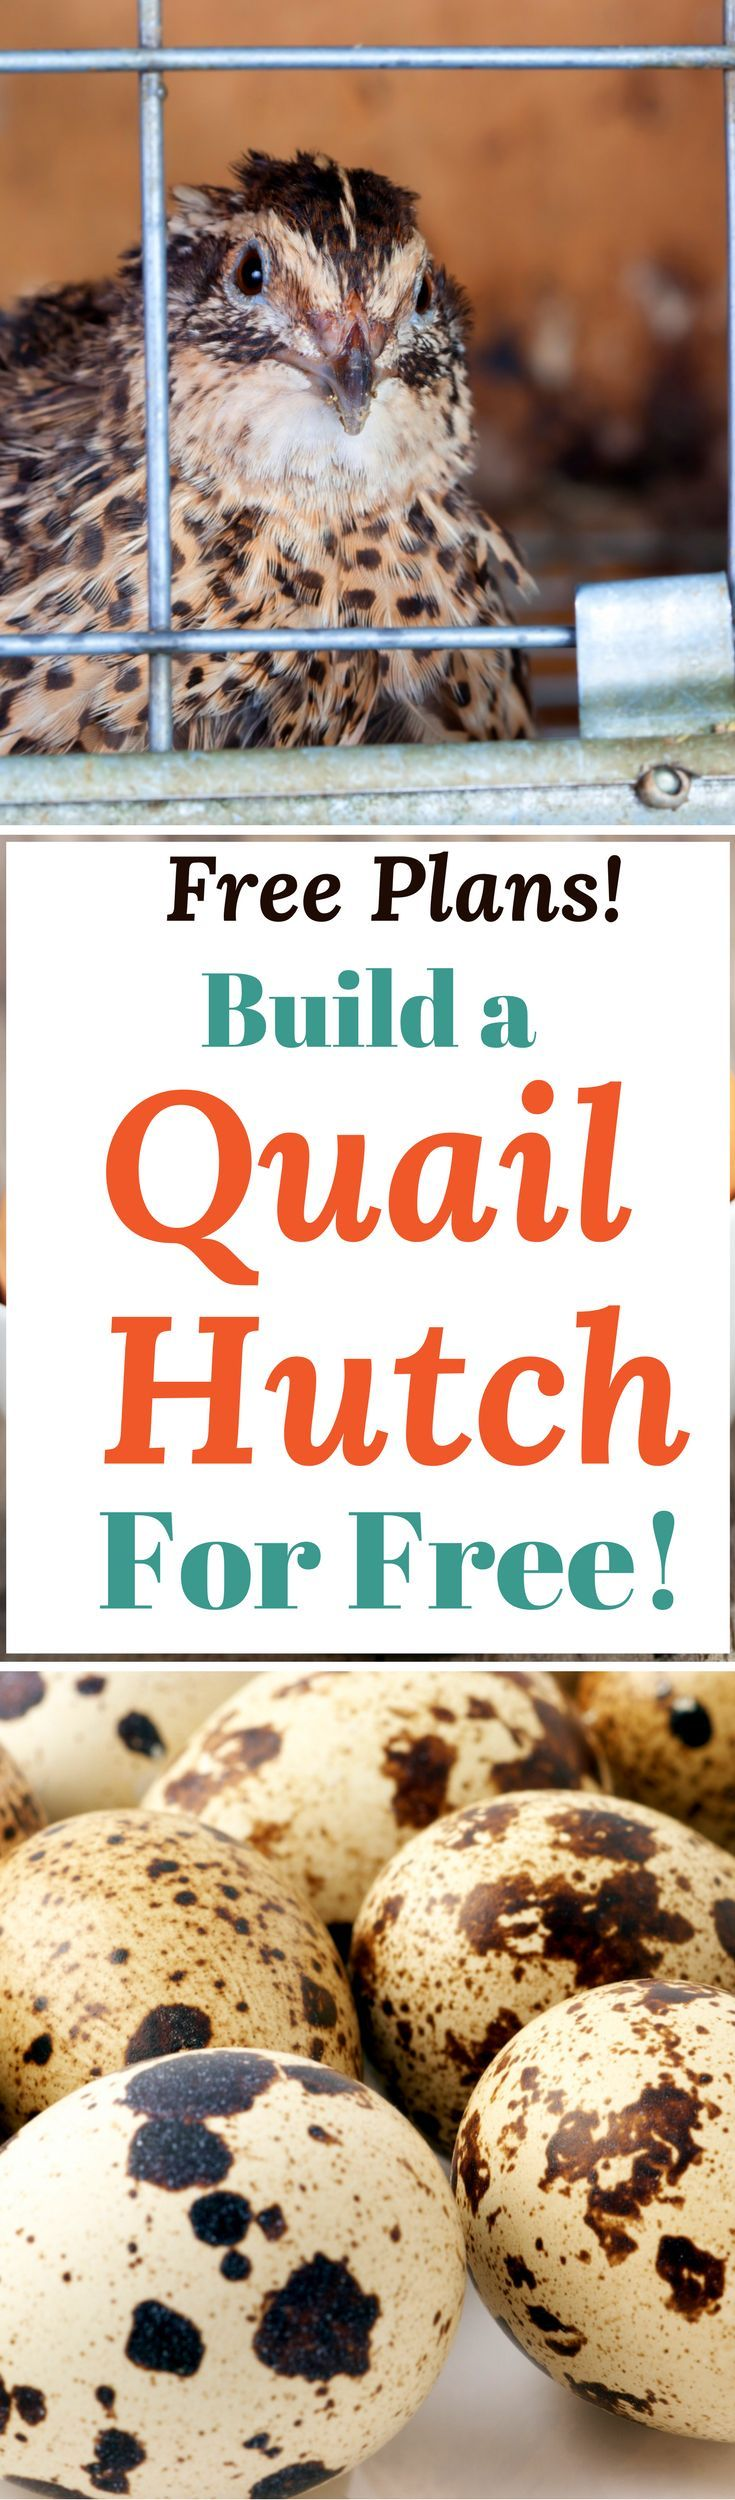 They Will Need A Place To Live And Lay Eggs Here S Free Diy Plans That Show You How Build Quail Coop With Recycled Materials